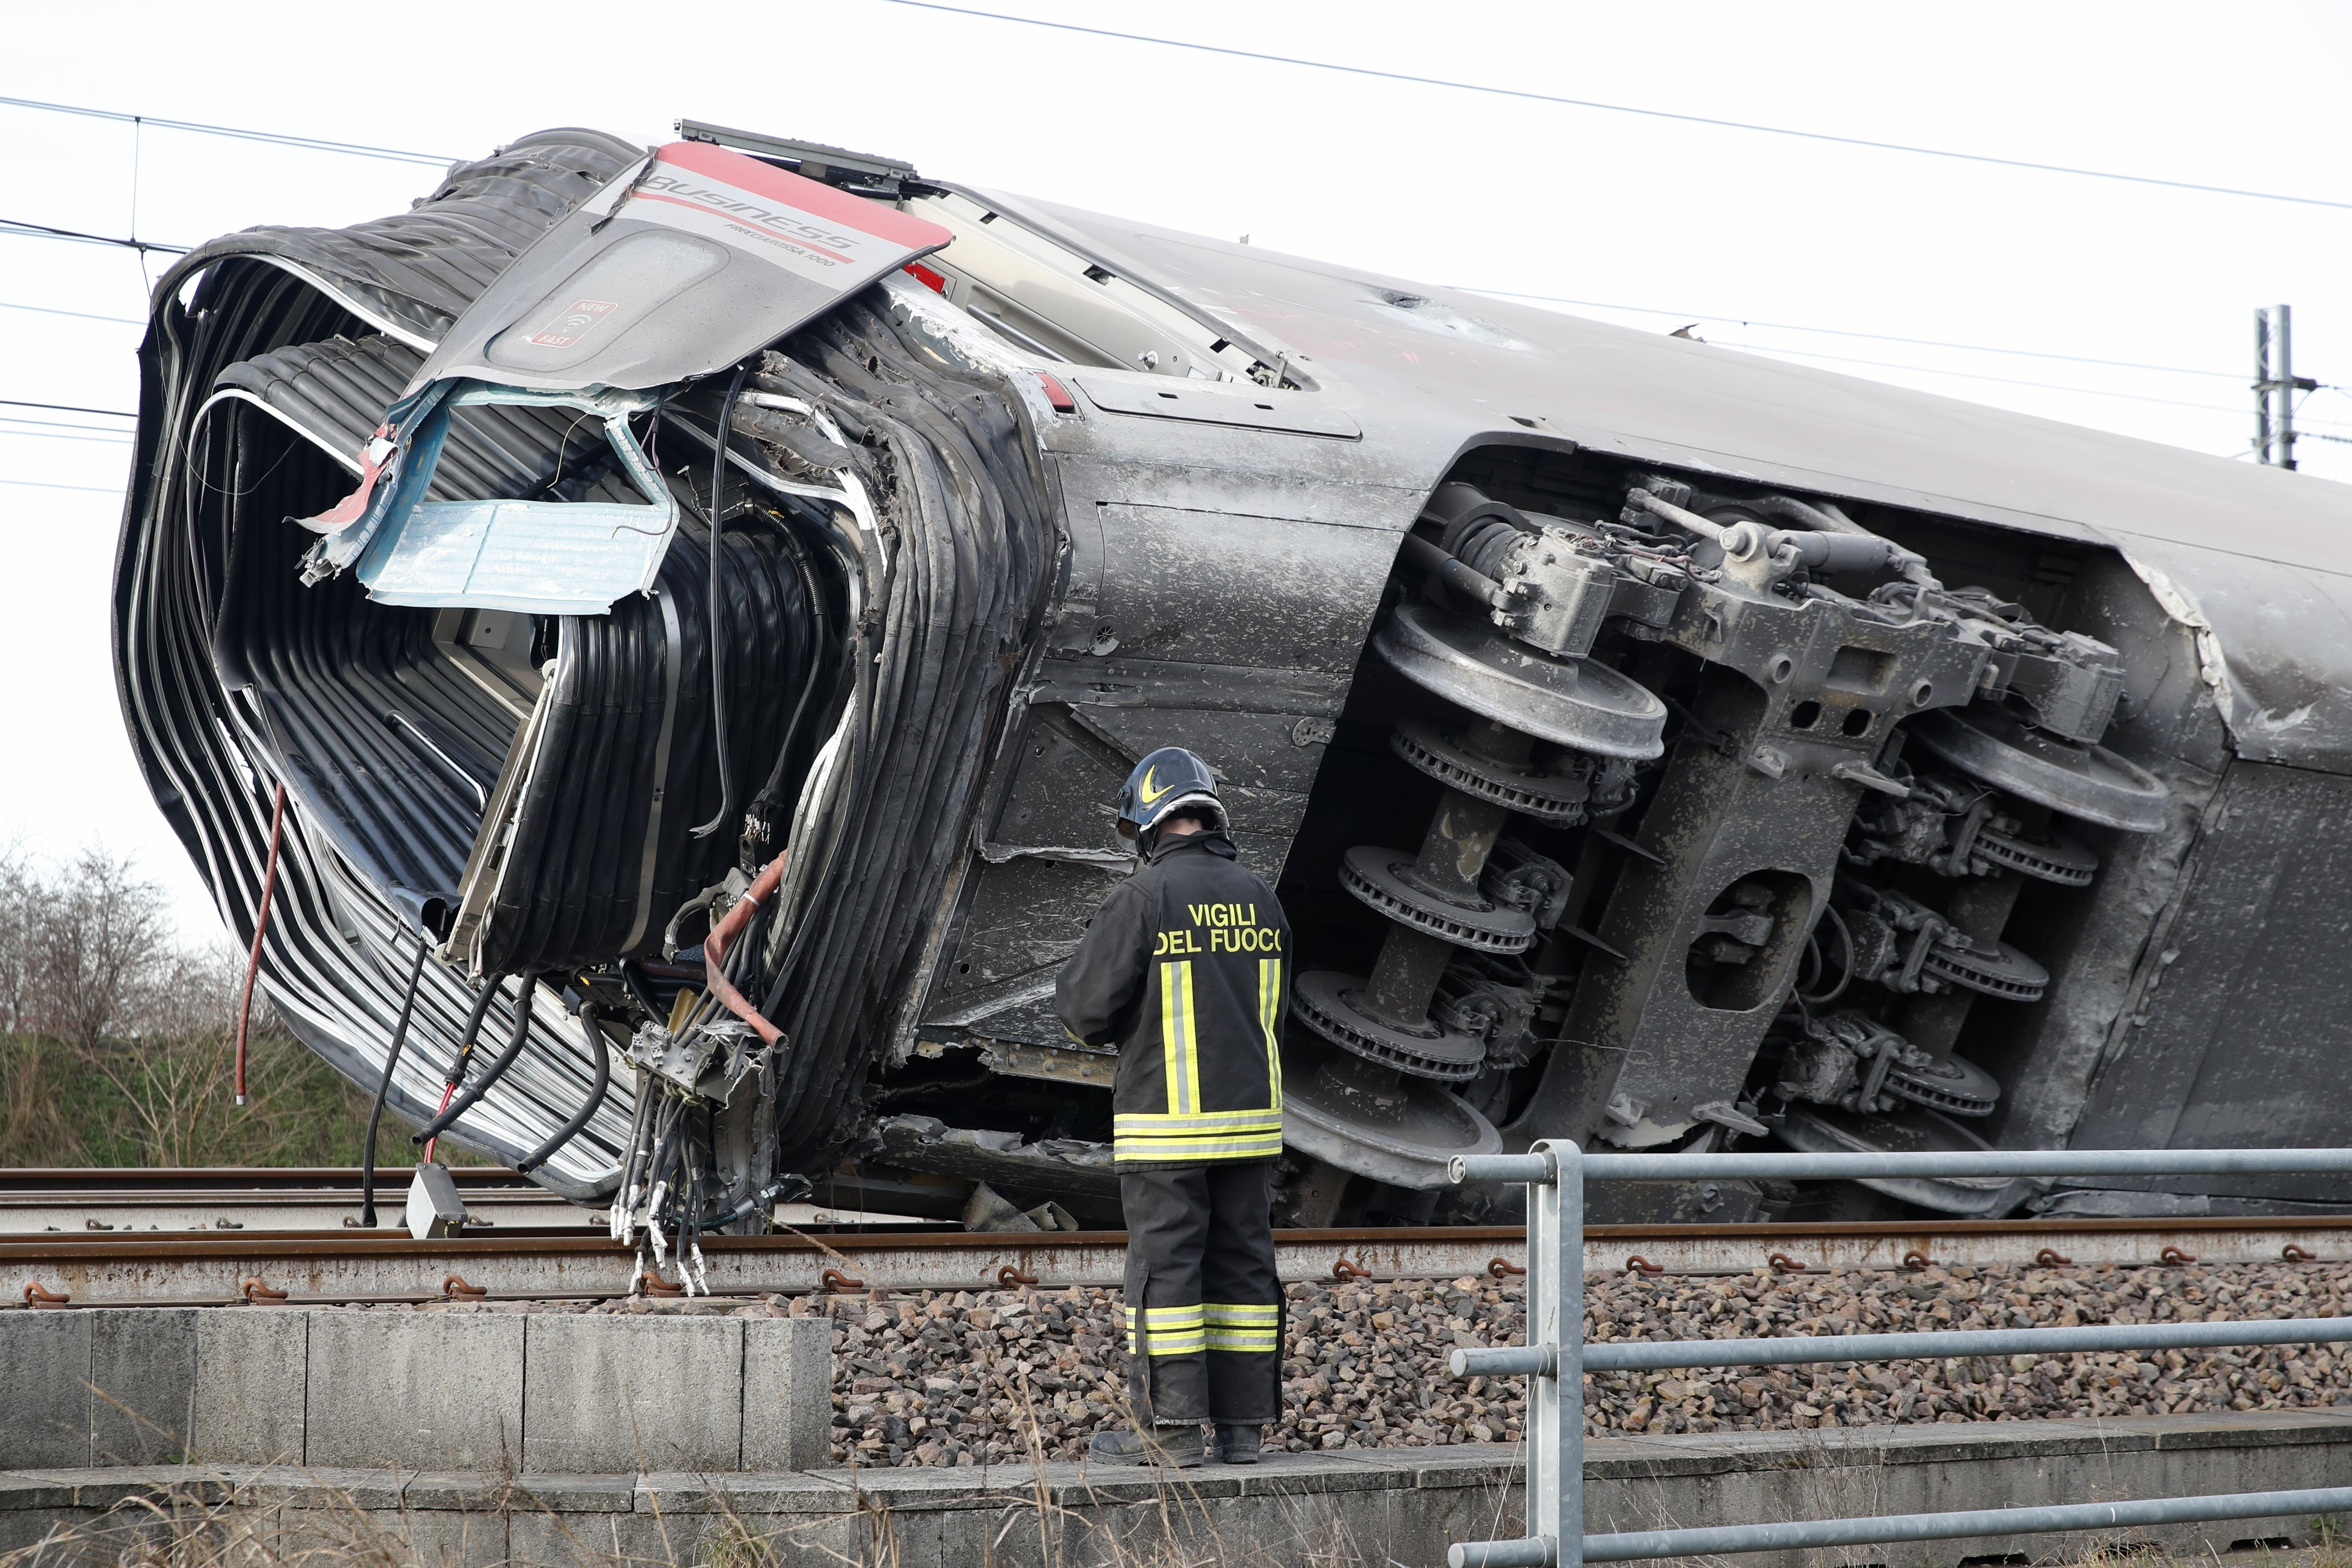 A firefighter inspects a derailed train carriage, near Lodi, northern Italy on Feb. 6, 2020.